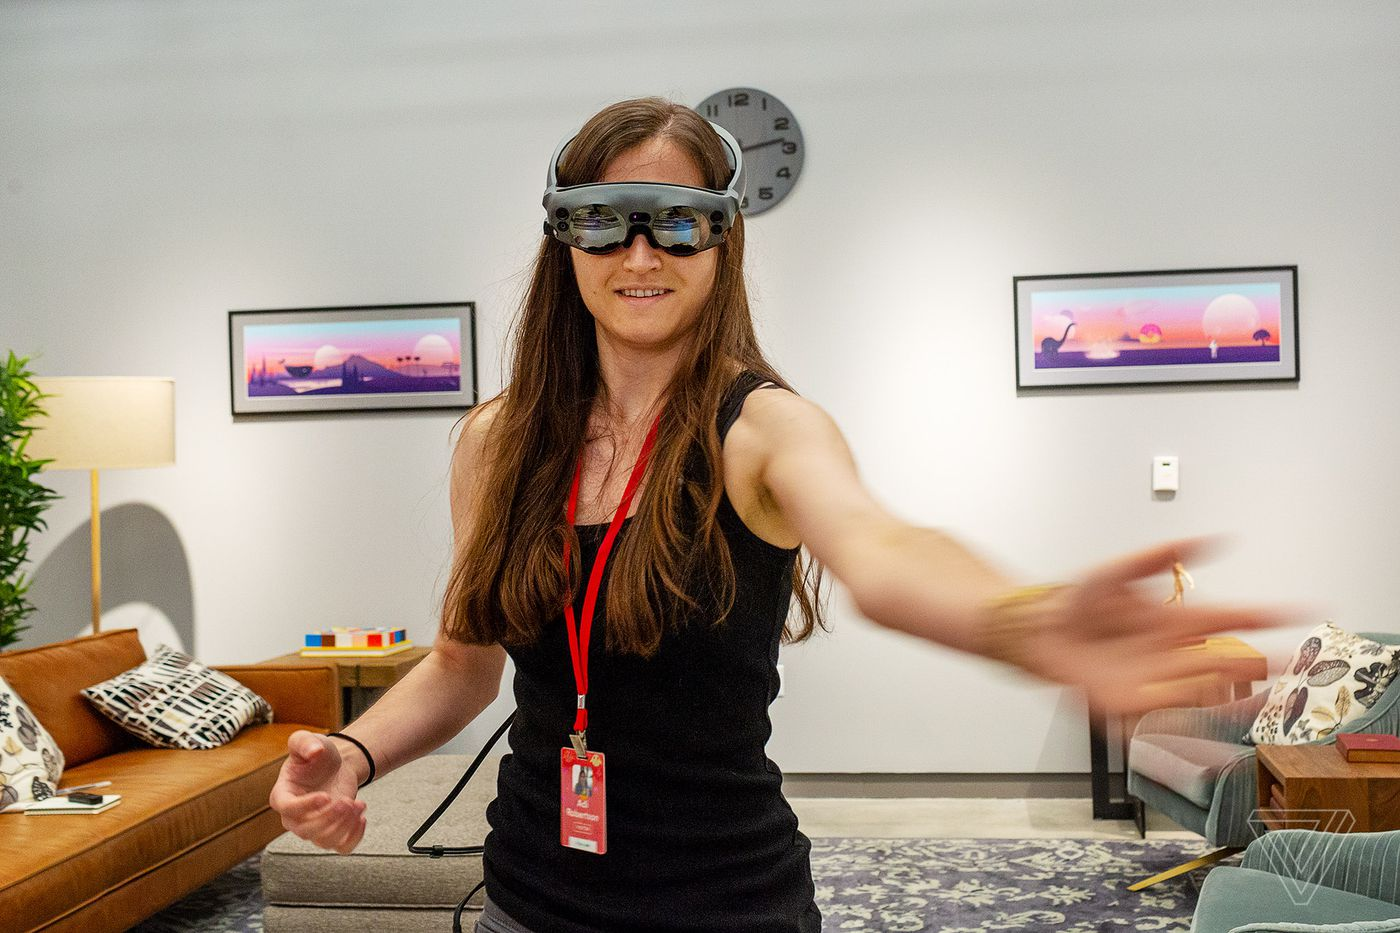 3D Porn No Glasses magic leap one creator edition preview: a flawed glimpse of